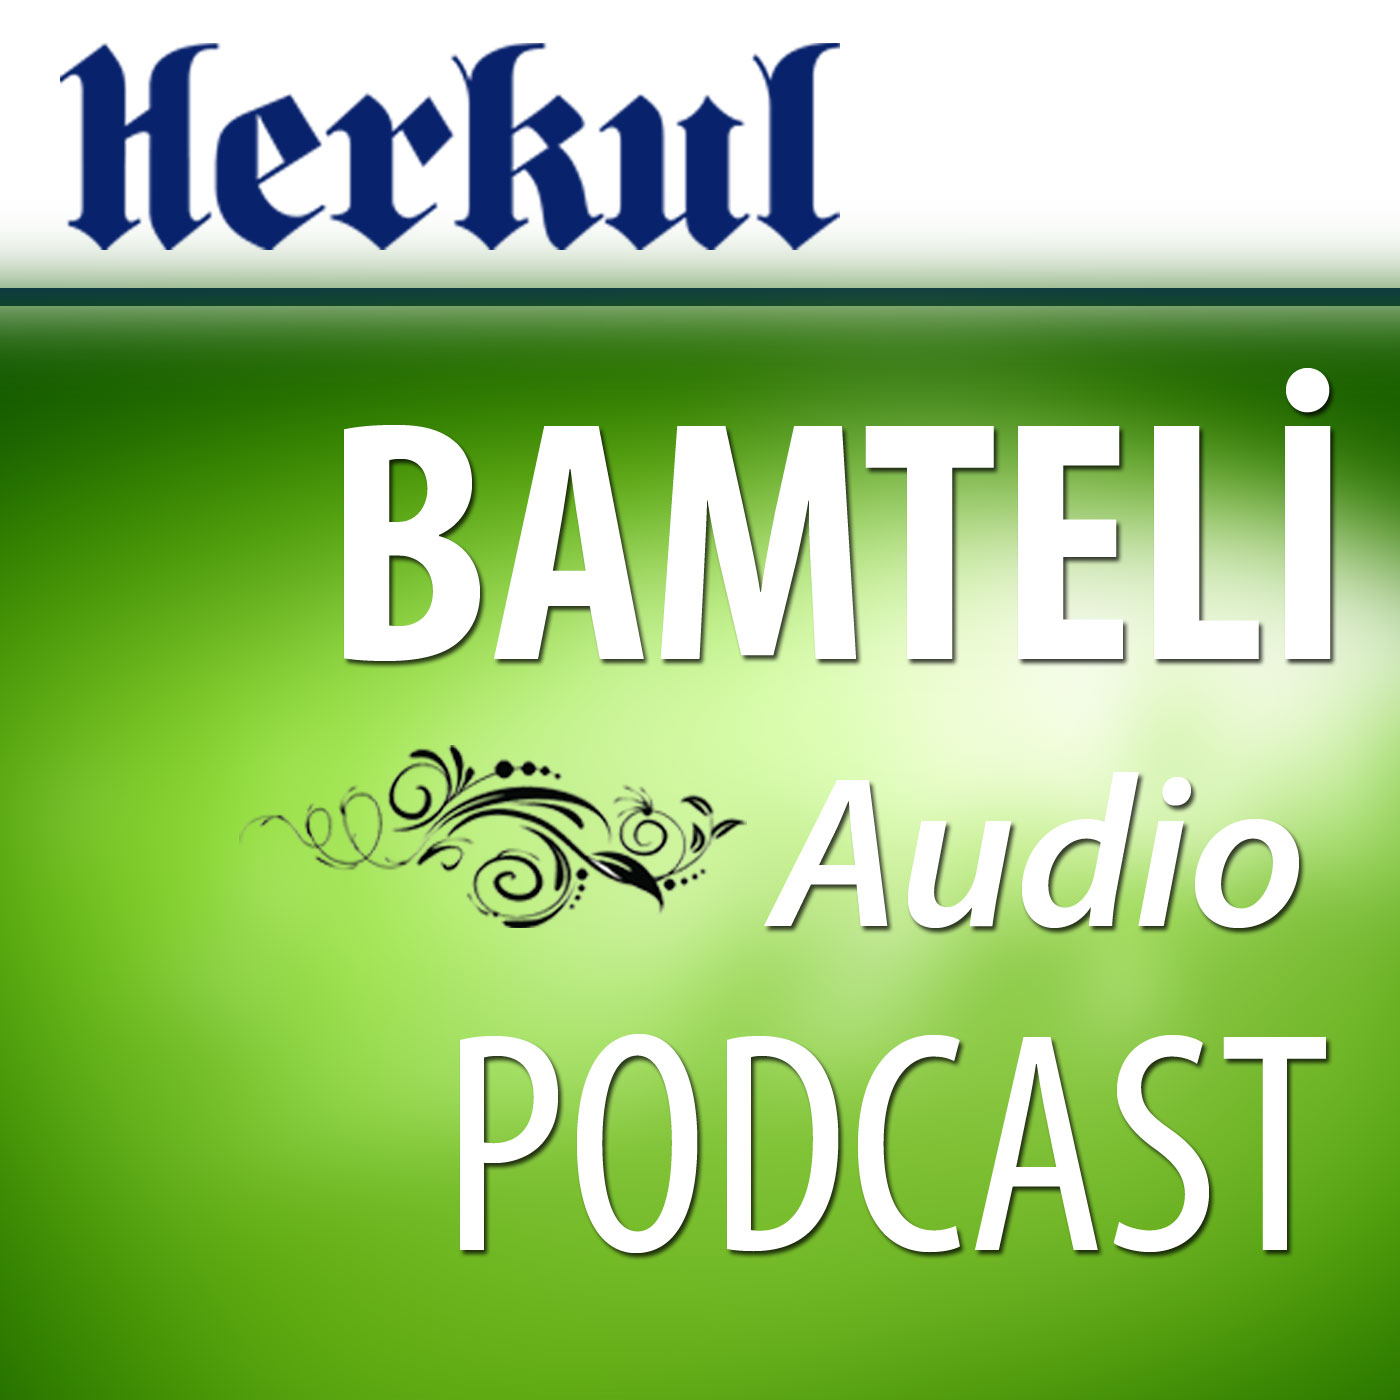 Herkul.org :. Bamteli Audio Podcast